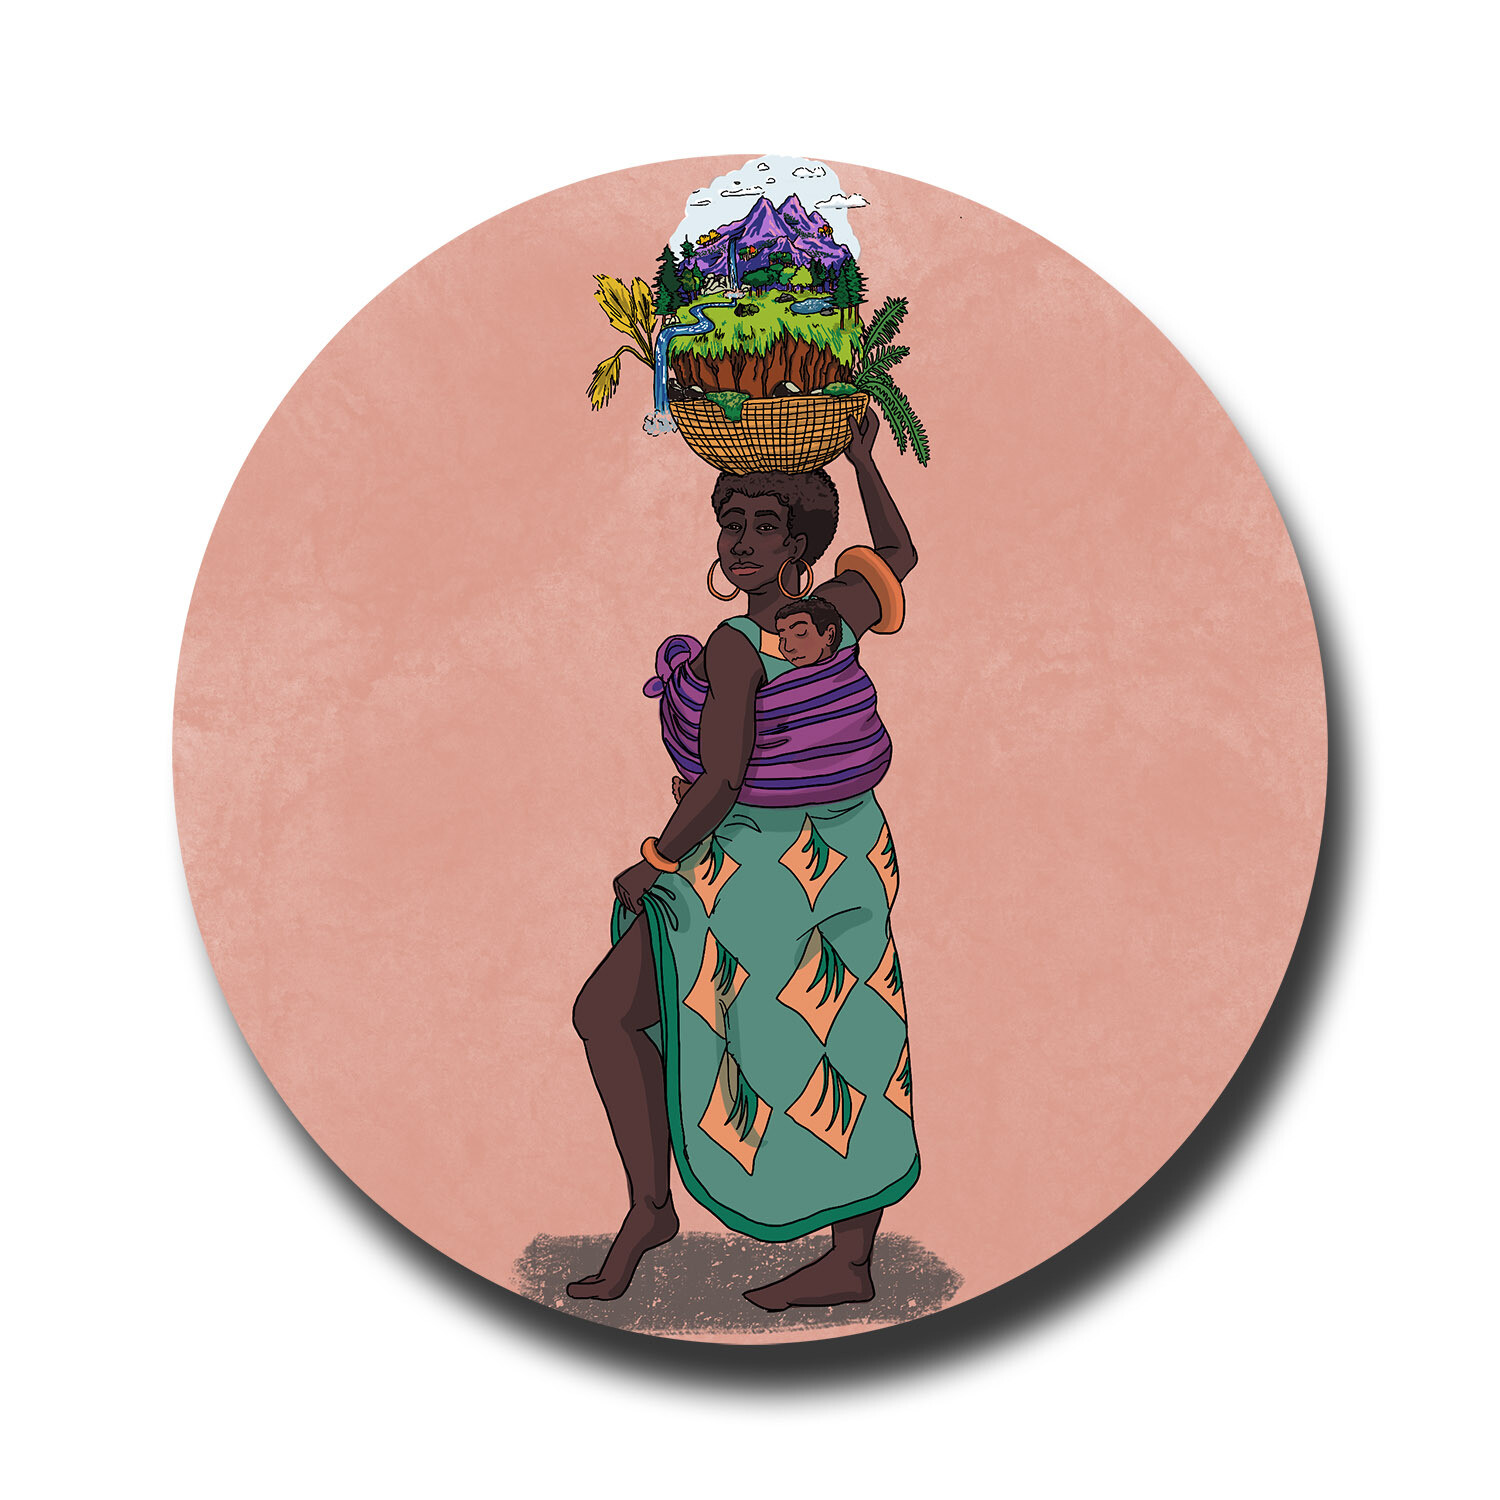 Black Mother of the Earth recycled sticker